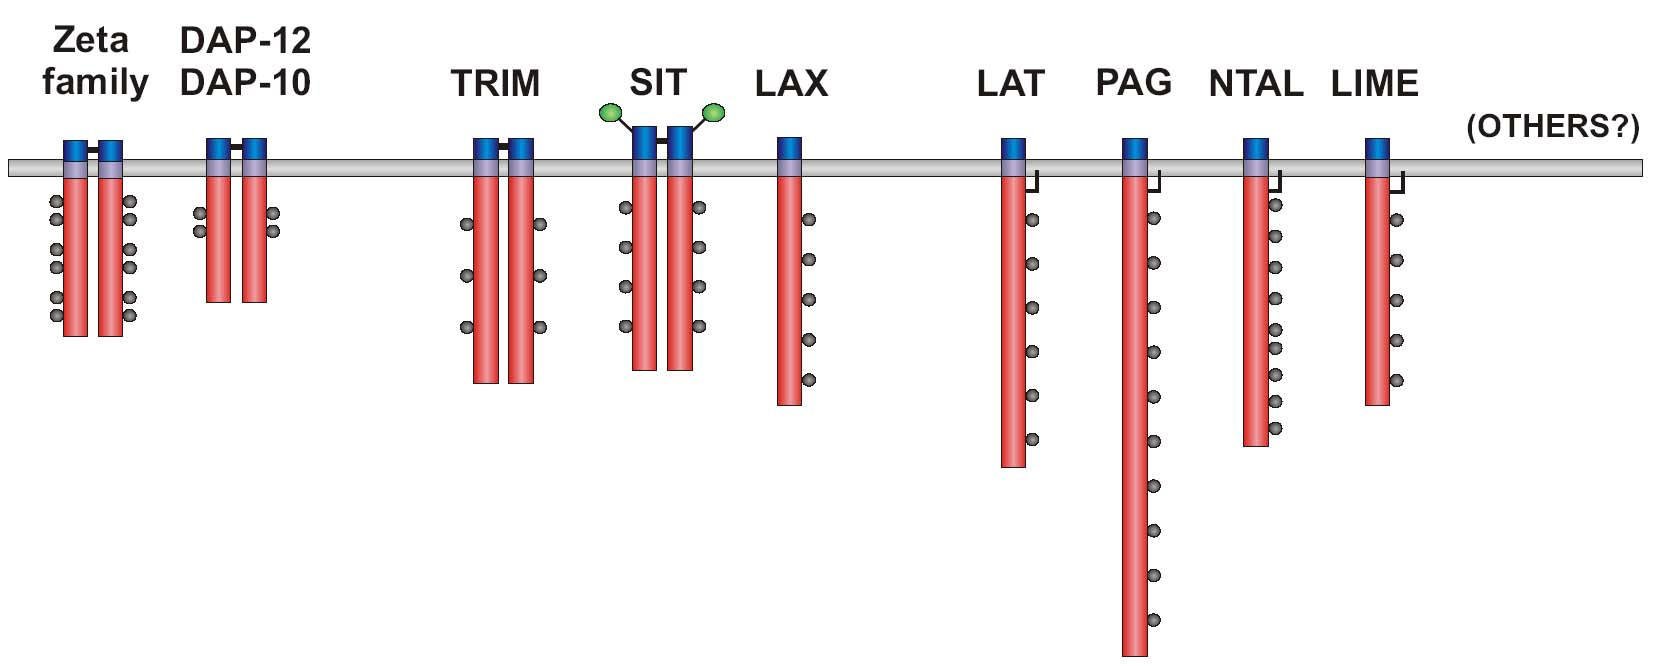 TRANSMEMBRANE ADAPTOR PROTEINS (TRAPs) IN GENERAL Closely associated with